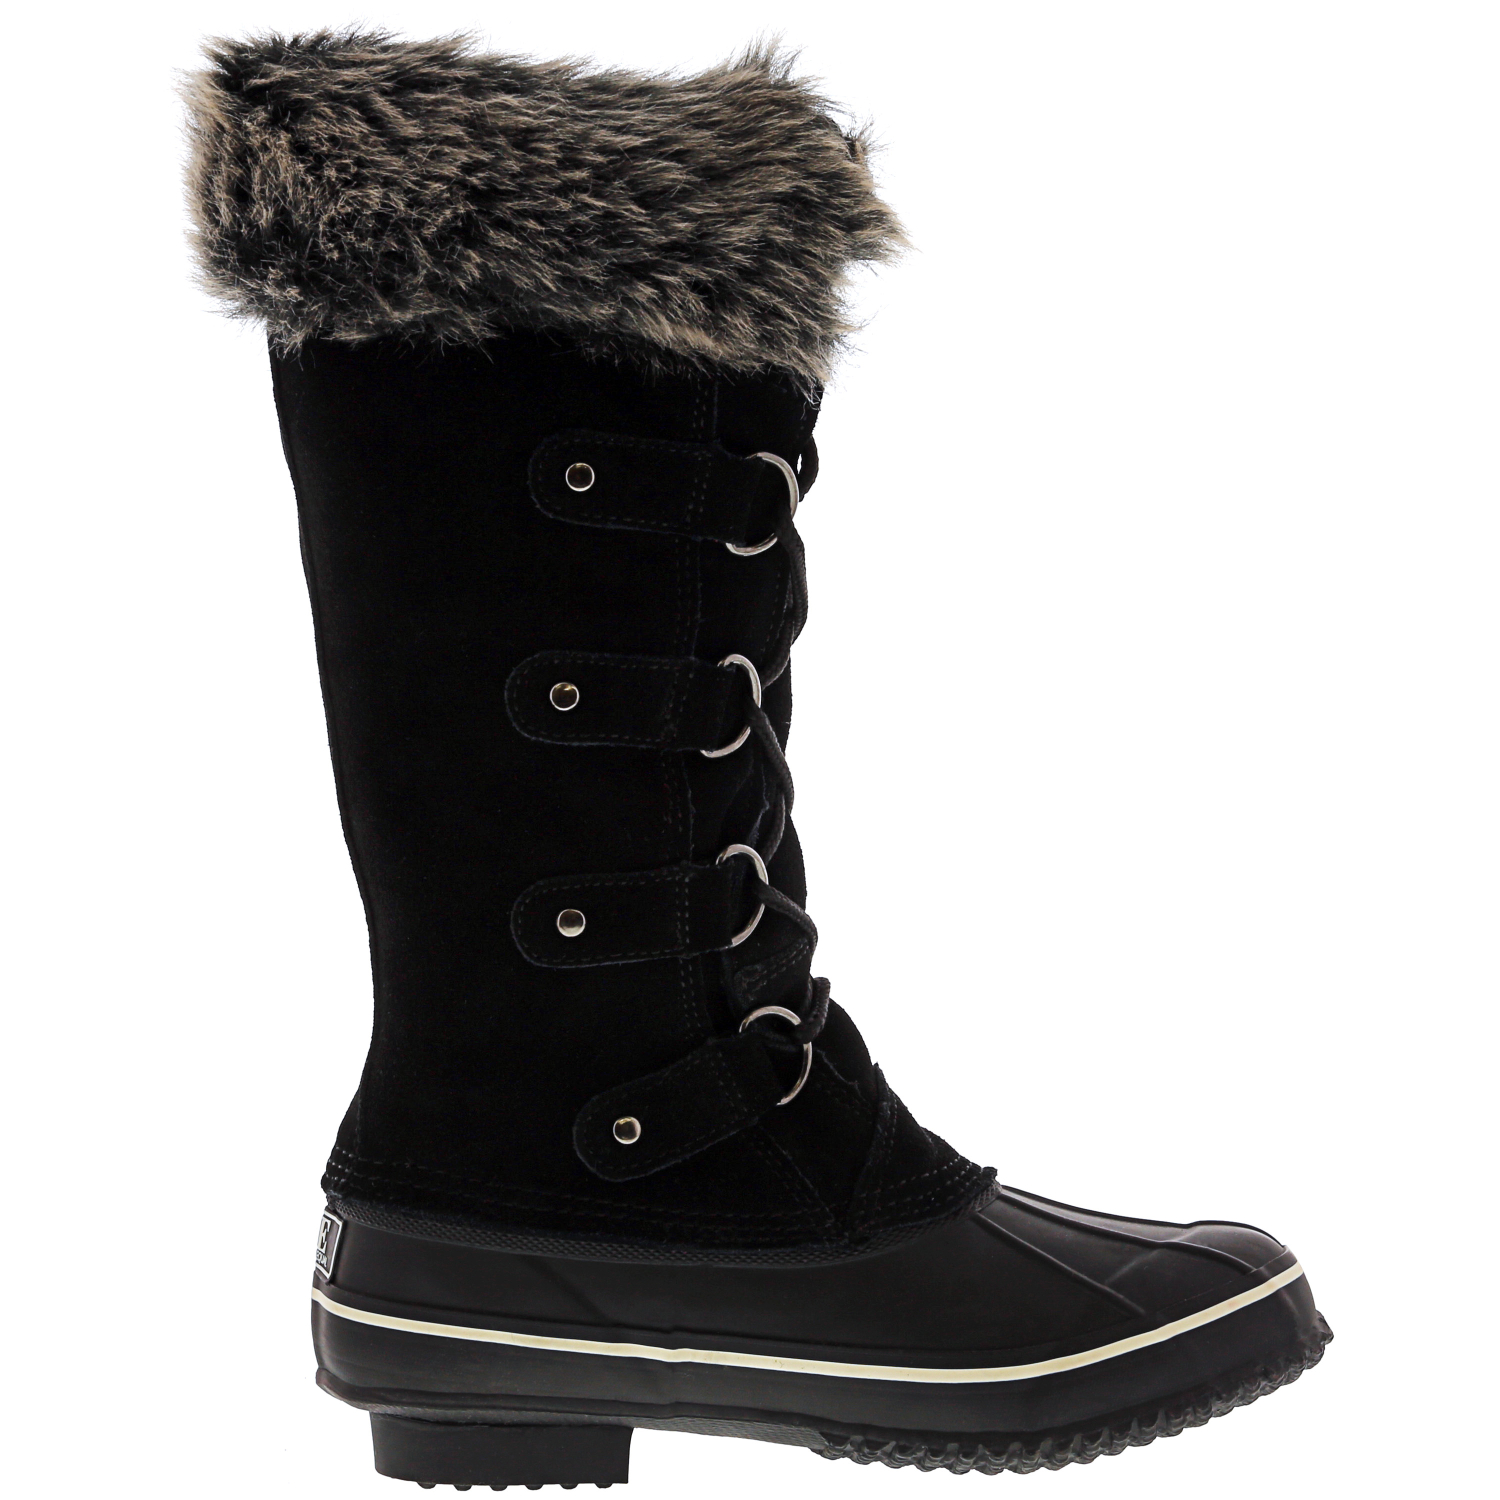 Kreated-Equal-Faux-Fur-Women-039-s-Tall-Arctic-Winter-Boots thumbnail 8